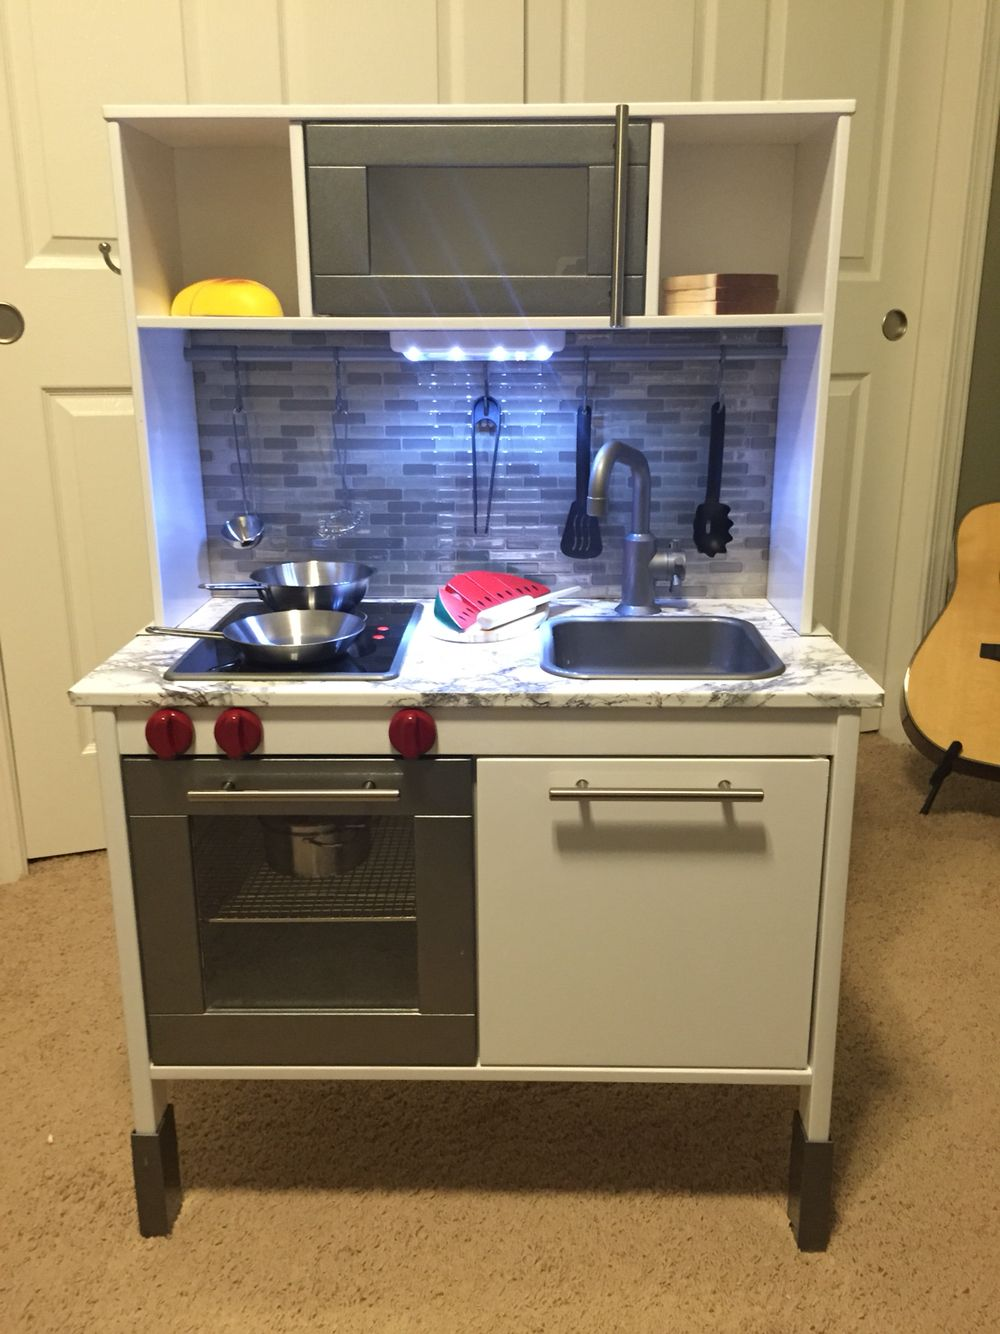 Ikea duktig play kitchen hack kids 39 stuff pinterest for Play kitchen set ikea